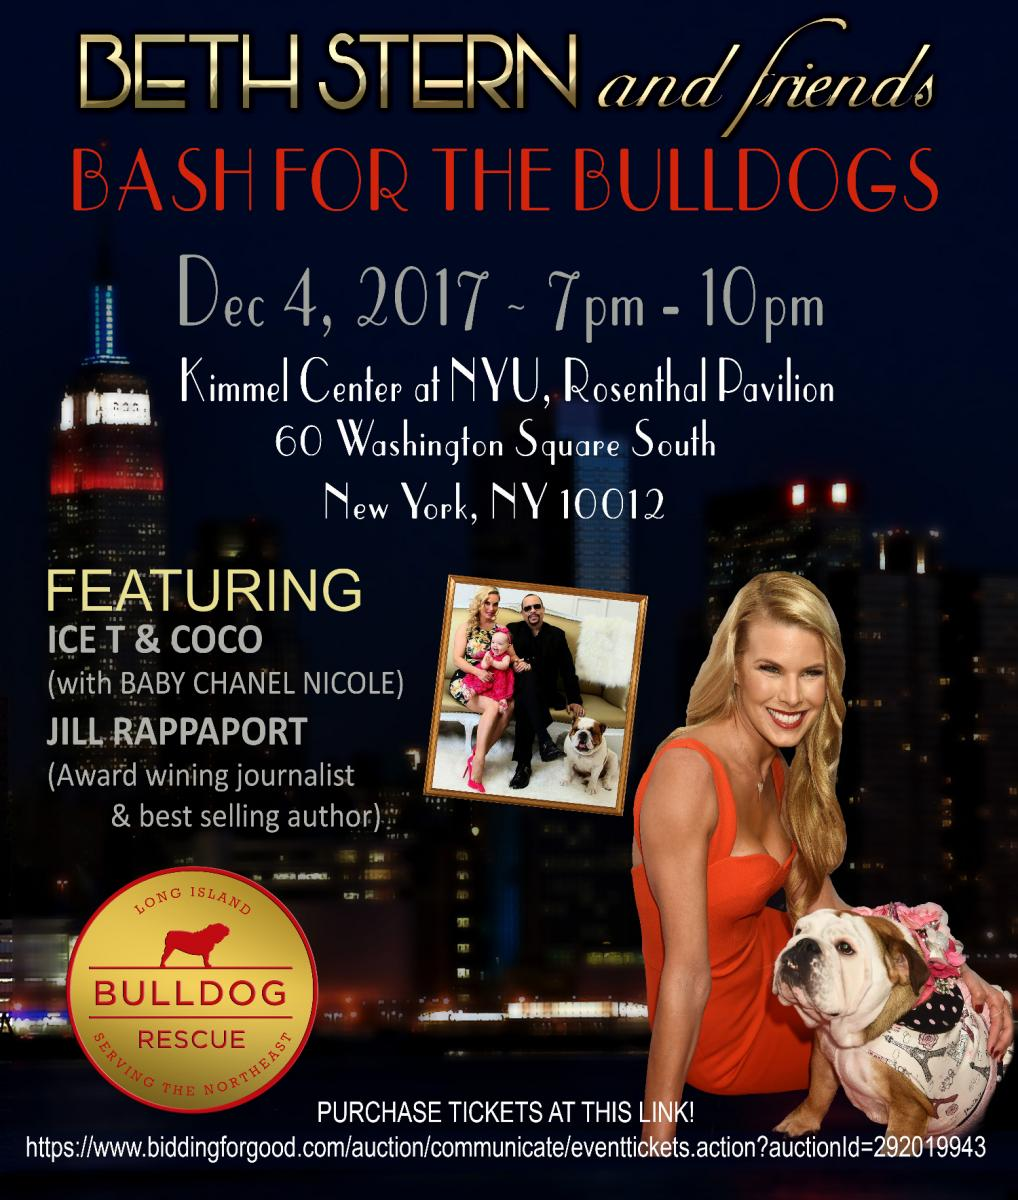 BETH STERN AND FRIENDS HOST BASH FOR THE BULLDOGS